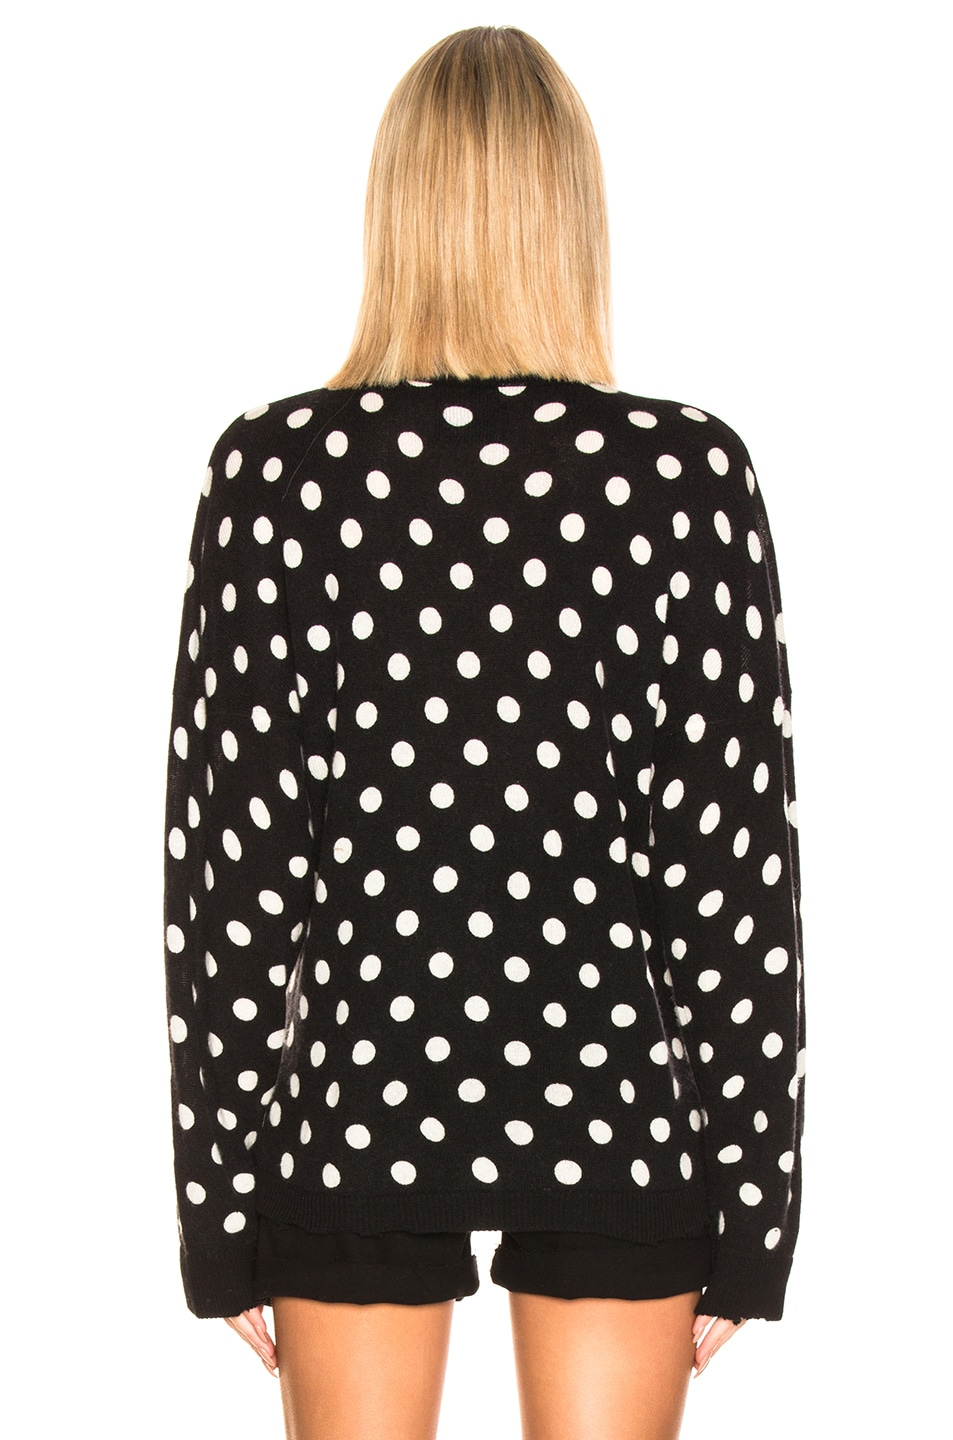 Image 3 of RtA Ella Cardigan in Black & White Dot Knit